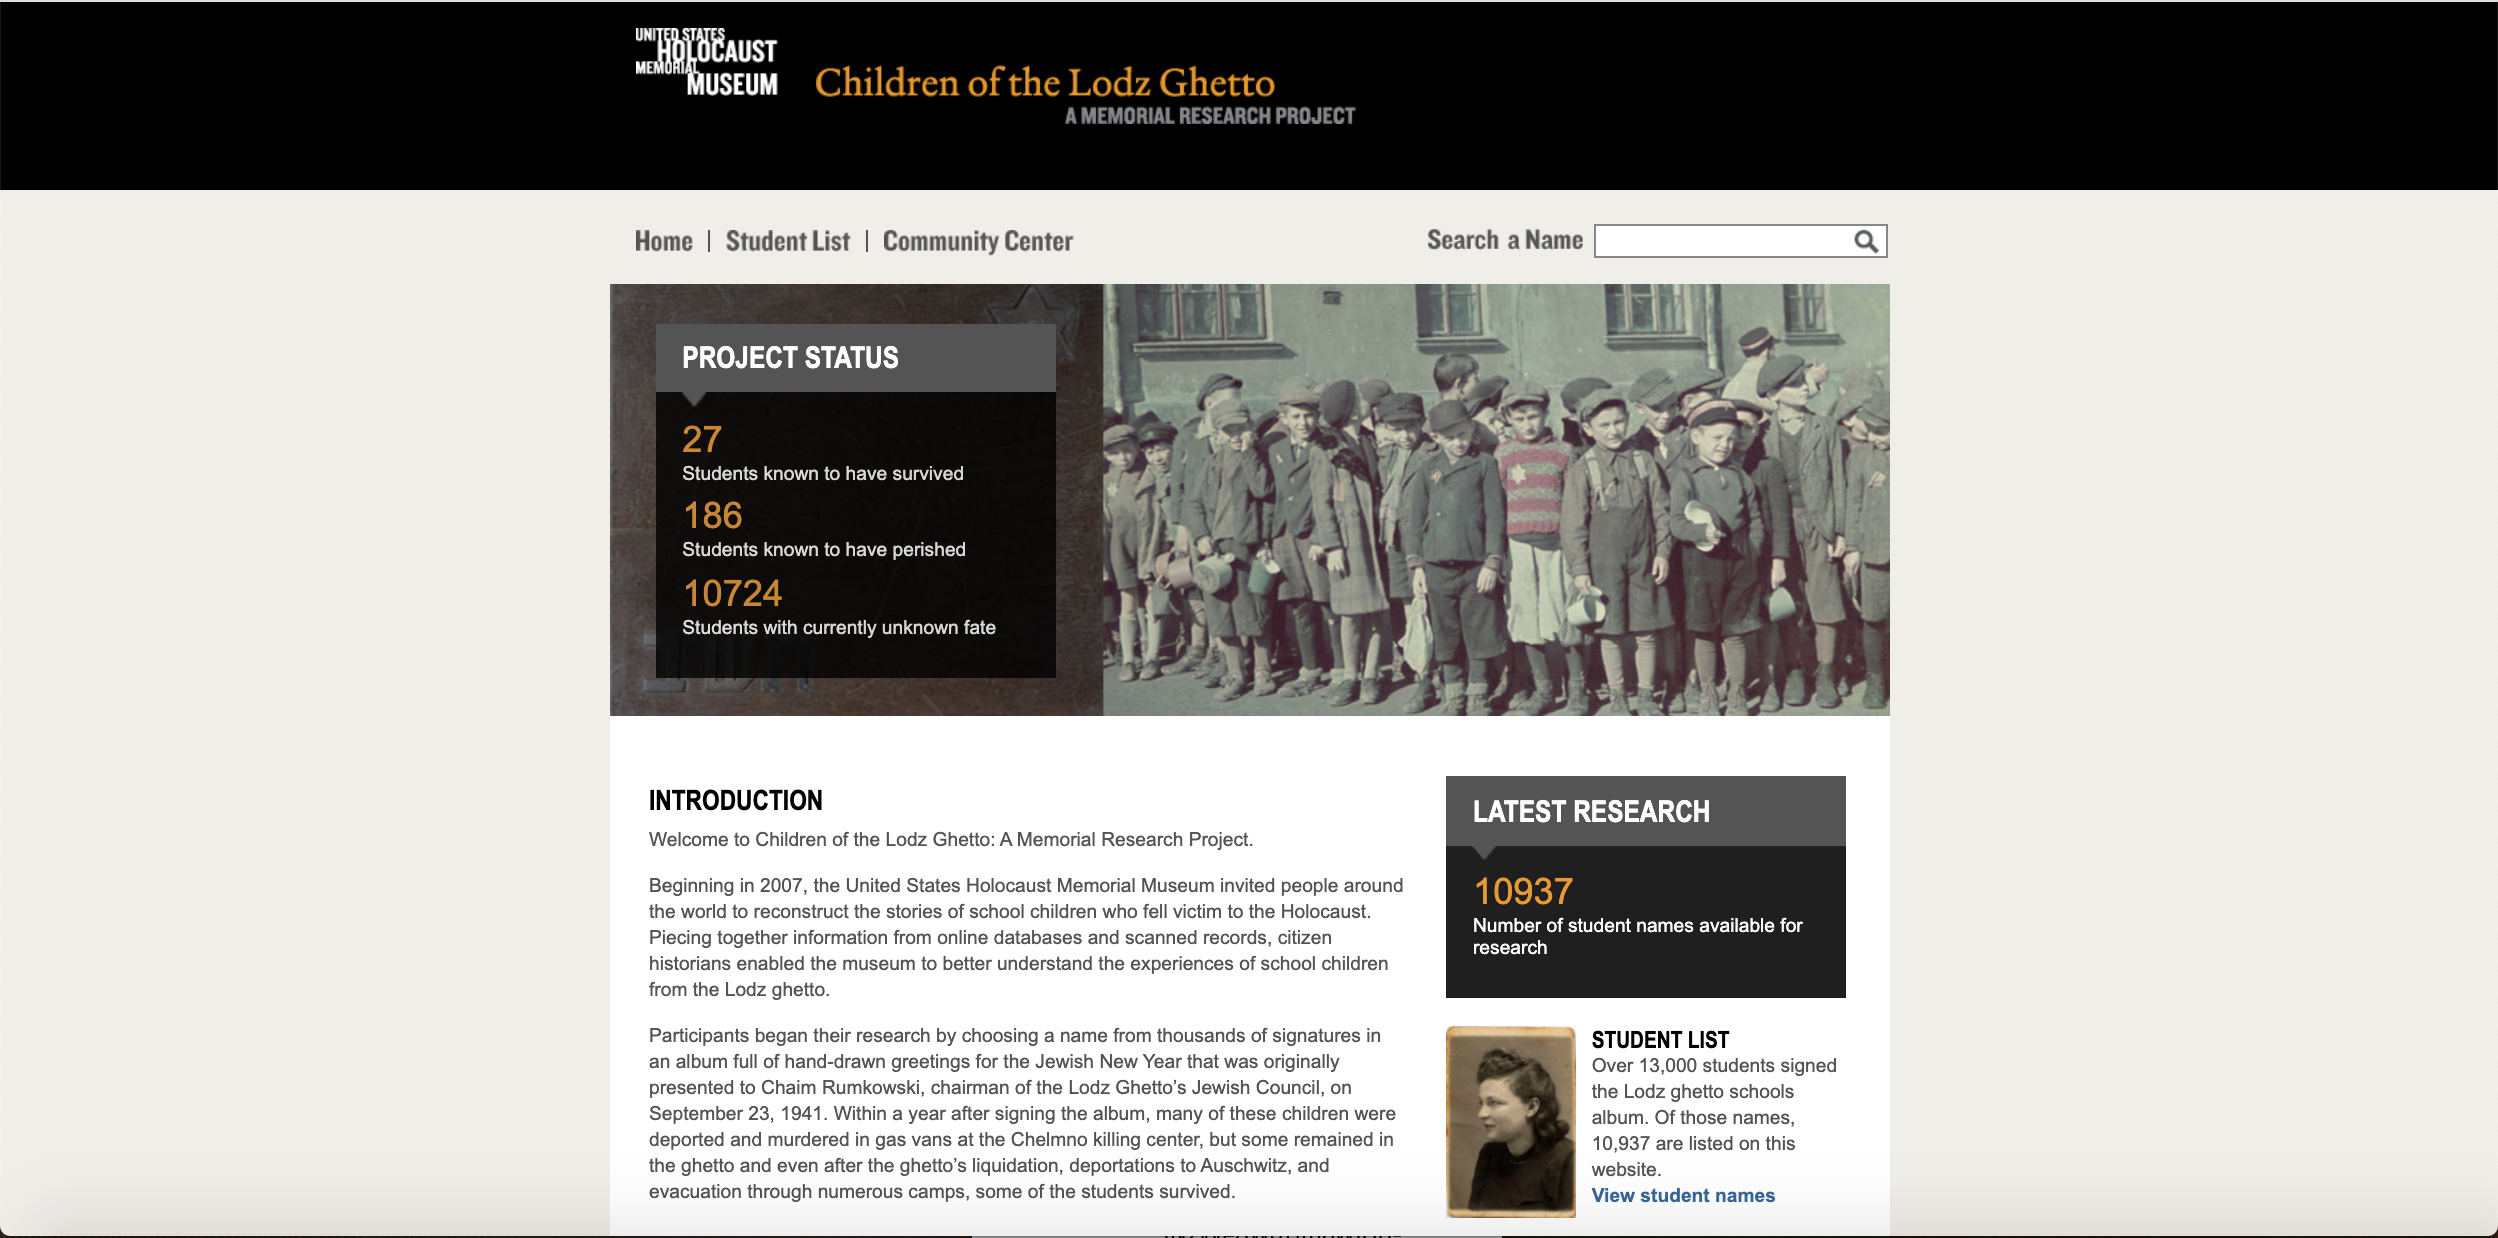 homepage of the Children of the Lodz Ghetto project, with an introduction to the project, latest research, project status, and student list